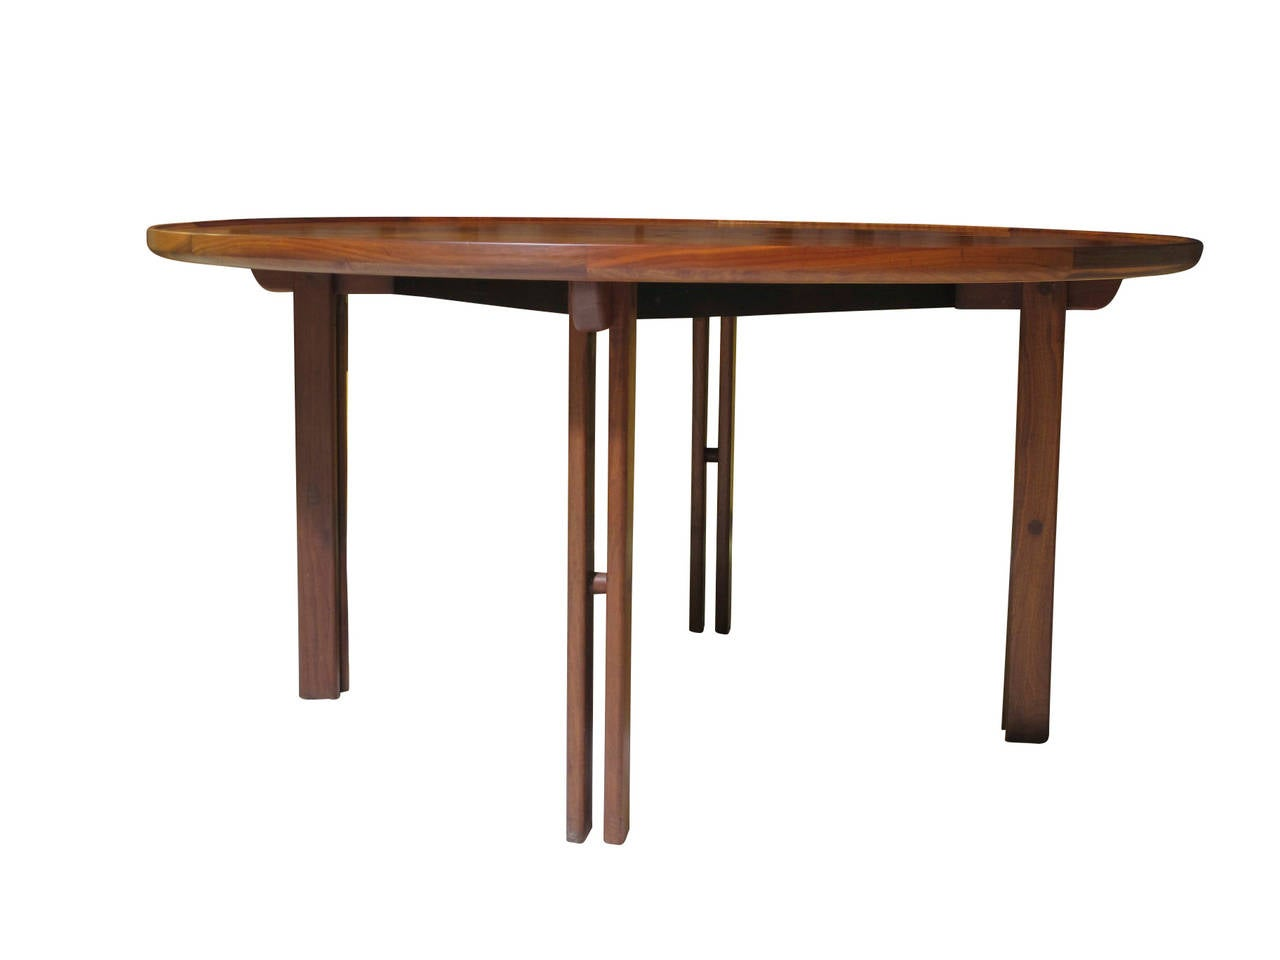 Walnut round coffee table with raised edge and ebony inlay in centre; raised on solid walnut sculpted legs.